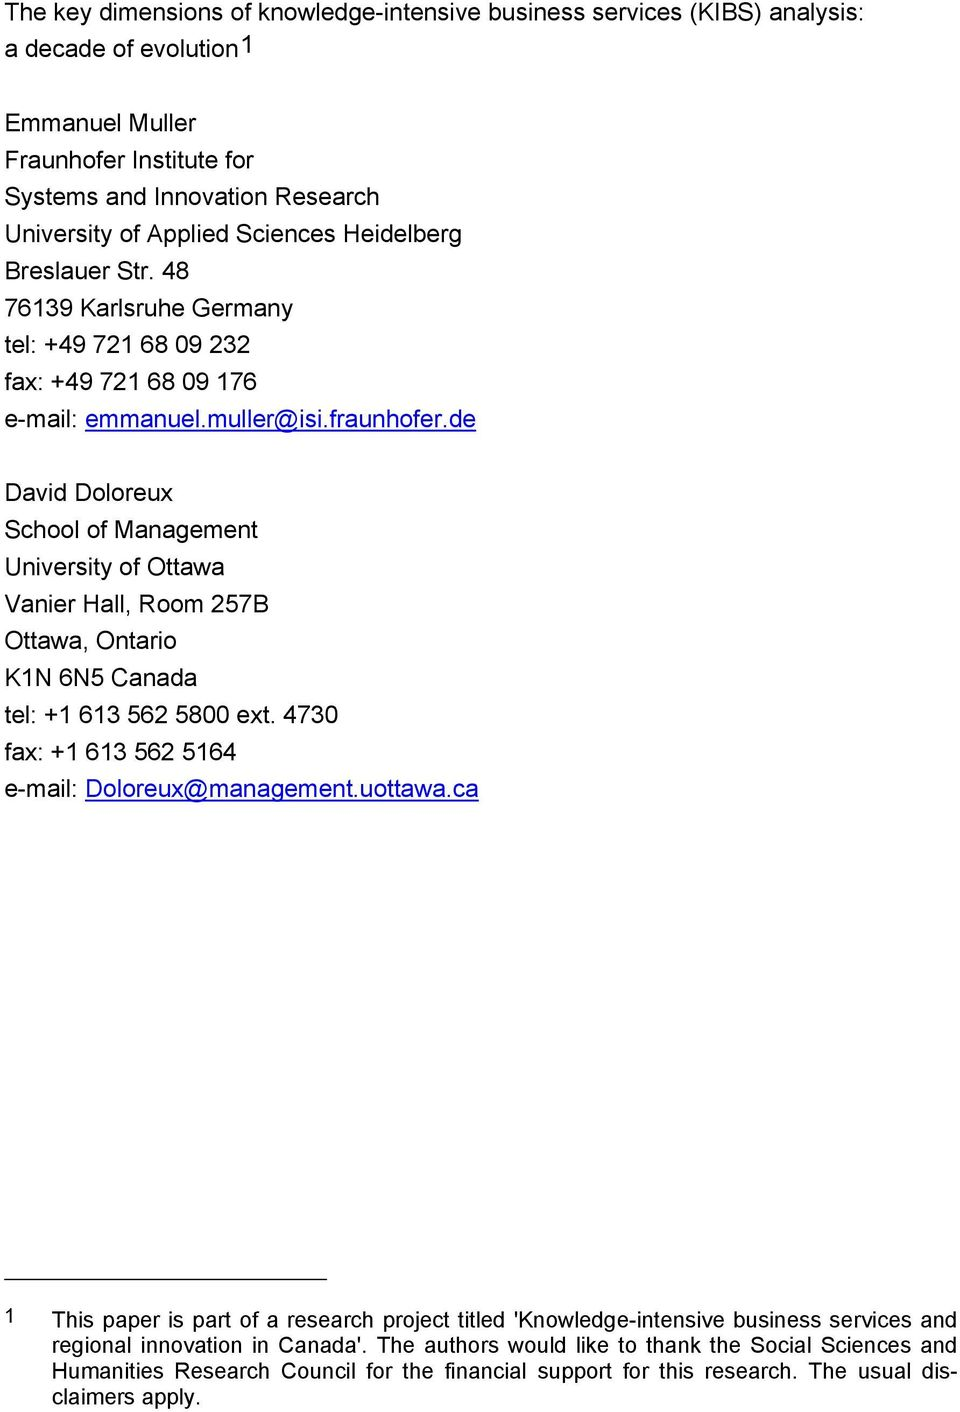 de David Doloreux School of Management University of Ottawa Vanier Hall, Room 257B Ottawa, Ontario K1N 6N5 Canada tel: +1 613 562 5800 ext. 4730 fax: +1 613 562 5164 e-mail: Doloreux@management.